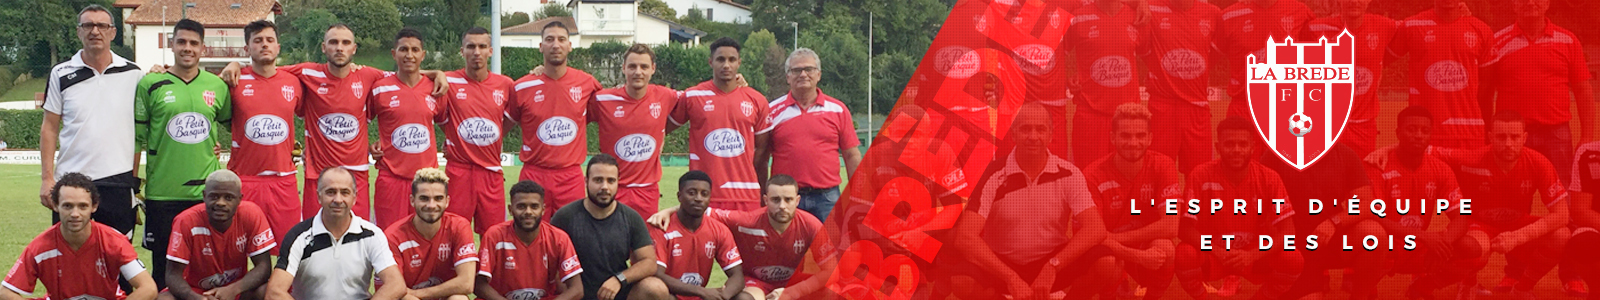 LA BREDE FOOTBALL CLUB : site officiel du club de foot de LA BREDE - footeo